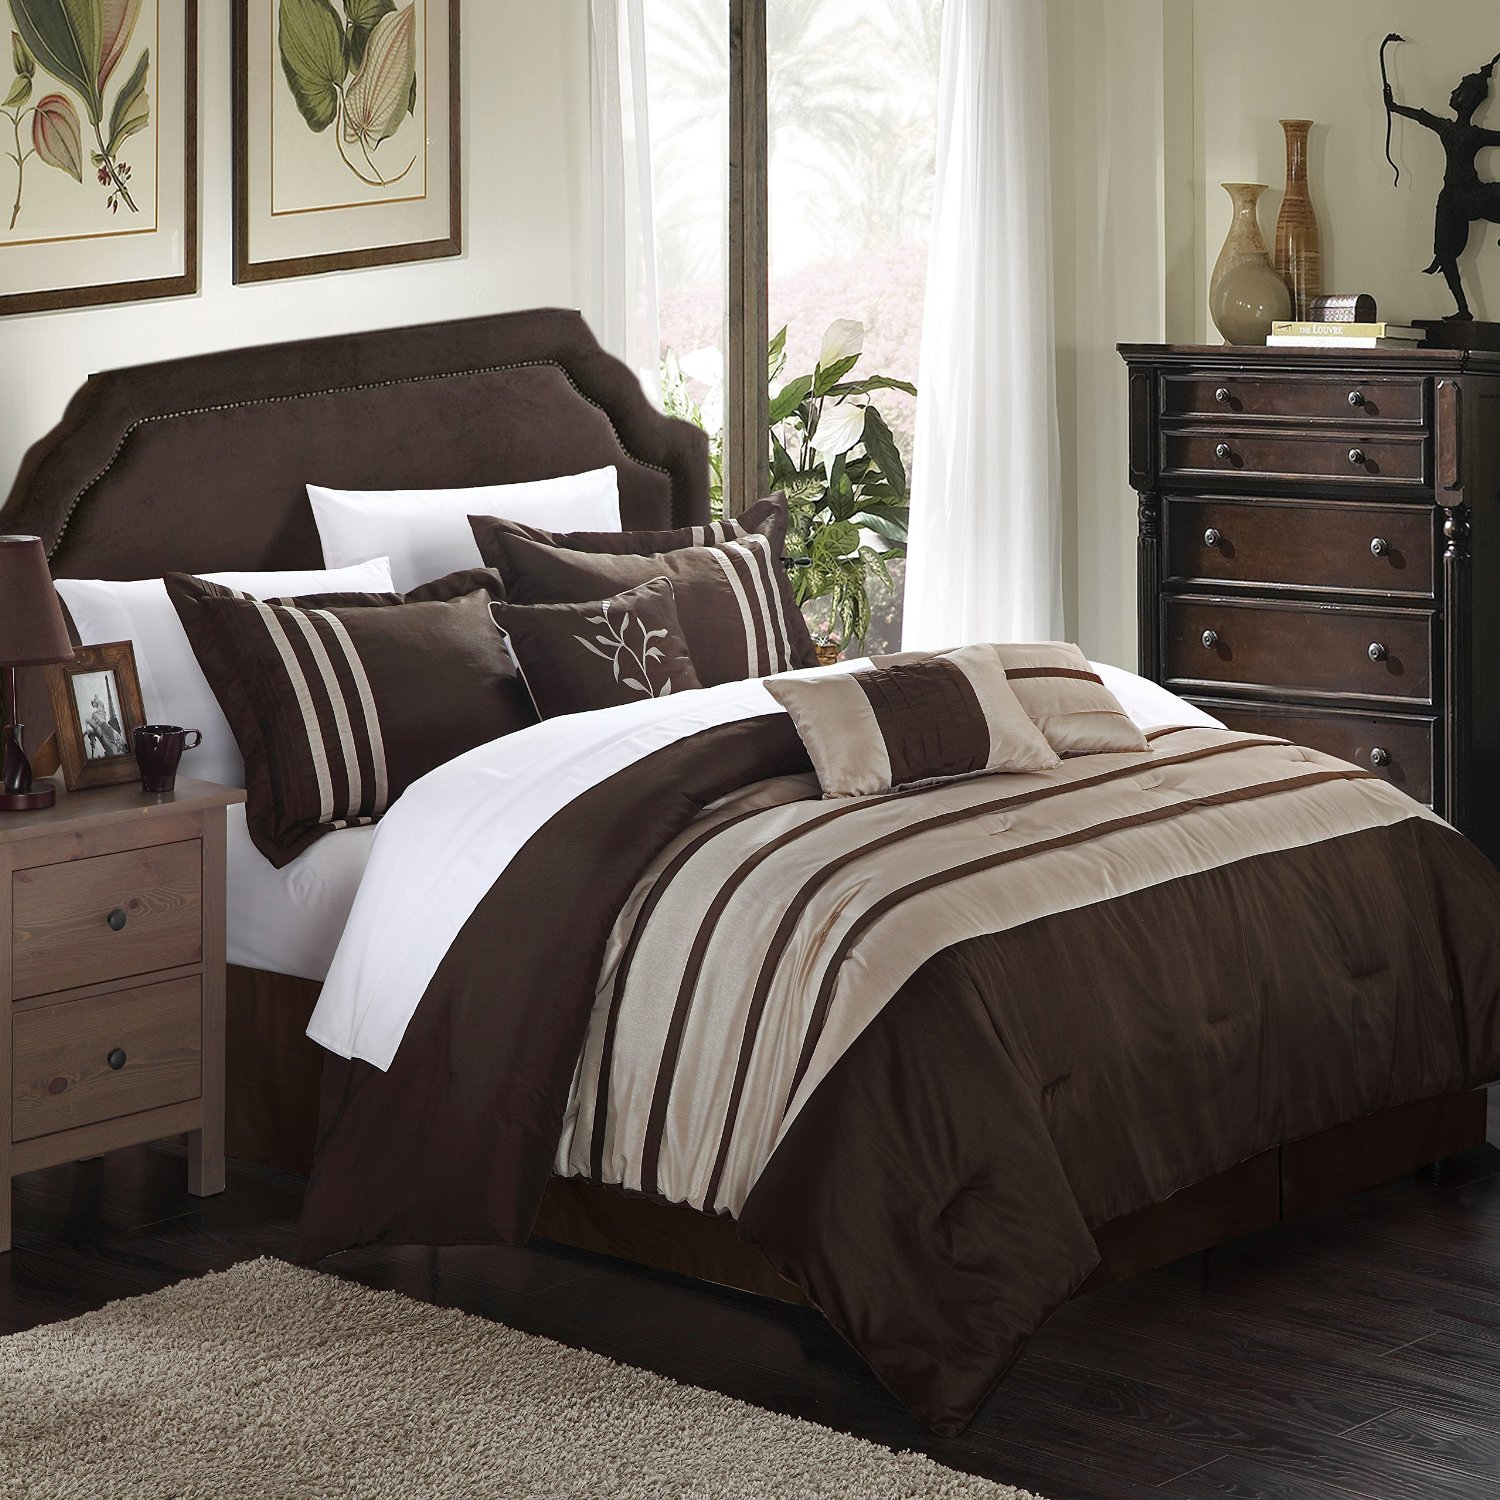 Chic Home CS1022-045-AN Torino Pleated Piecing Luxury Bedding Collection 7-Piece Comforter Set Pleated Piecing Luxury Bedding Collection Size; Bed Skirt shams And Decorative Pillows Included, King, Taupe